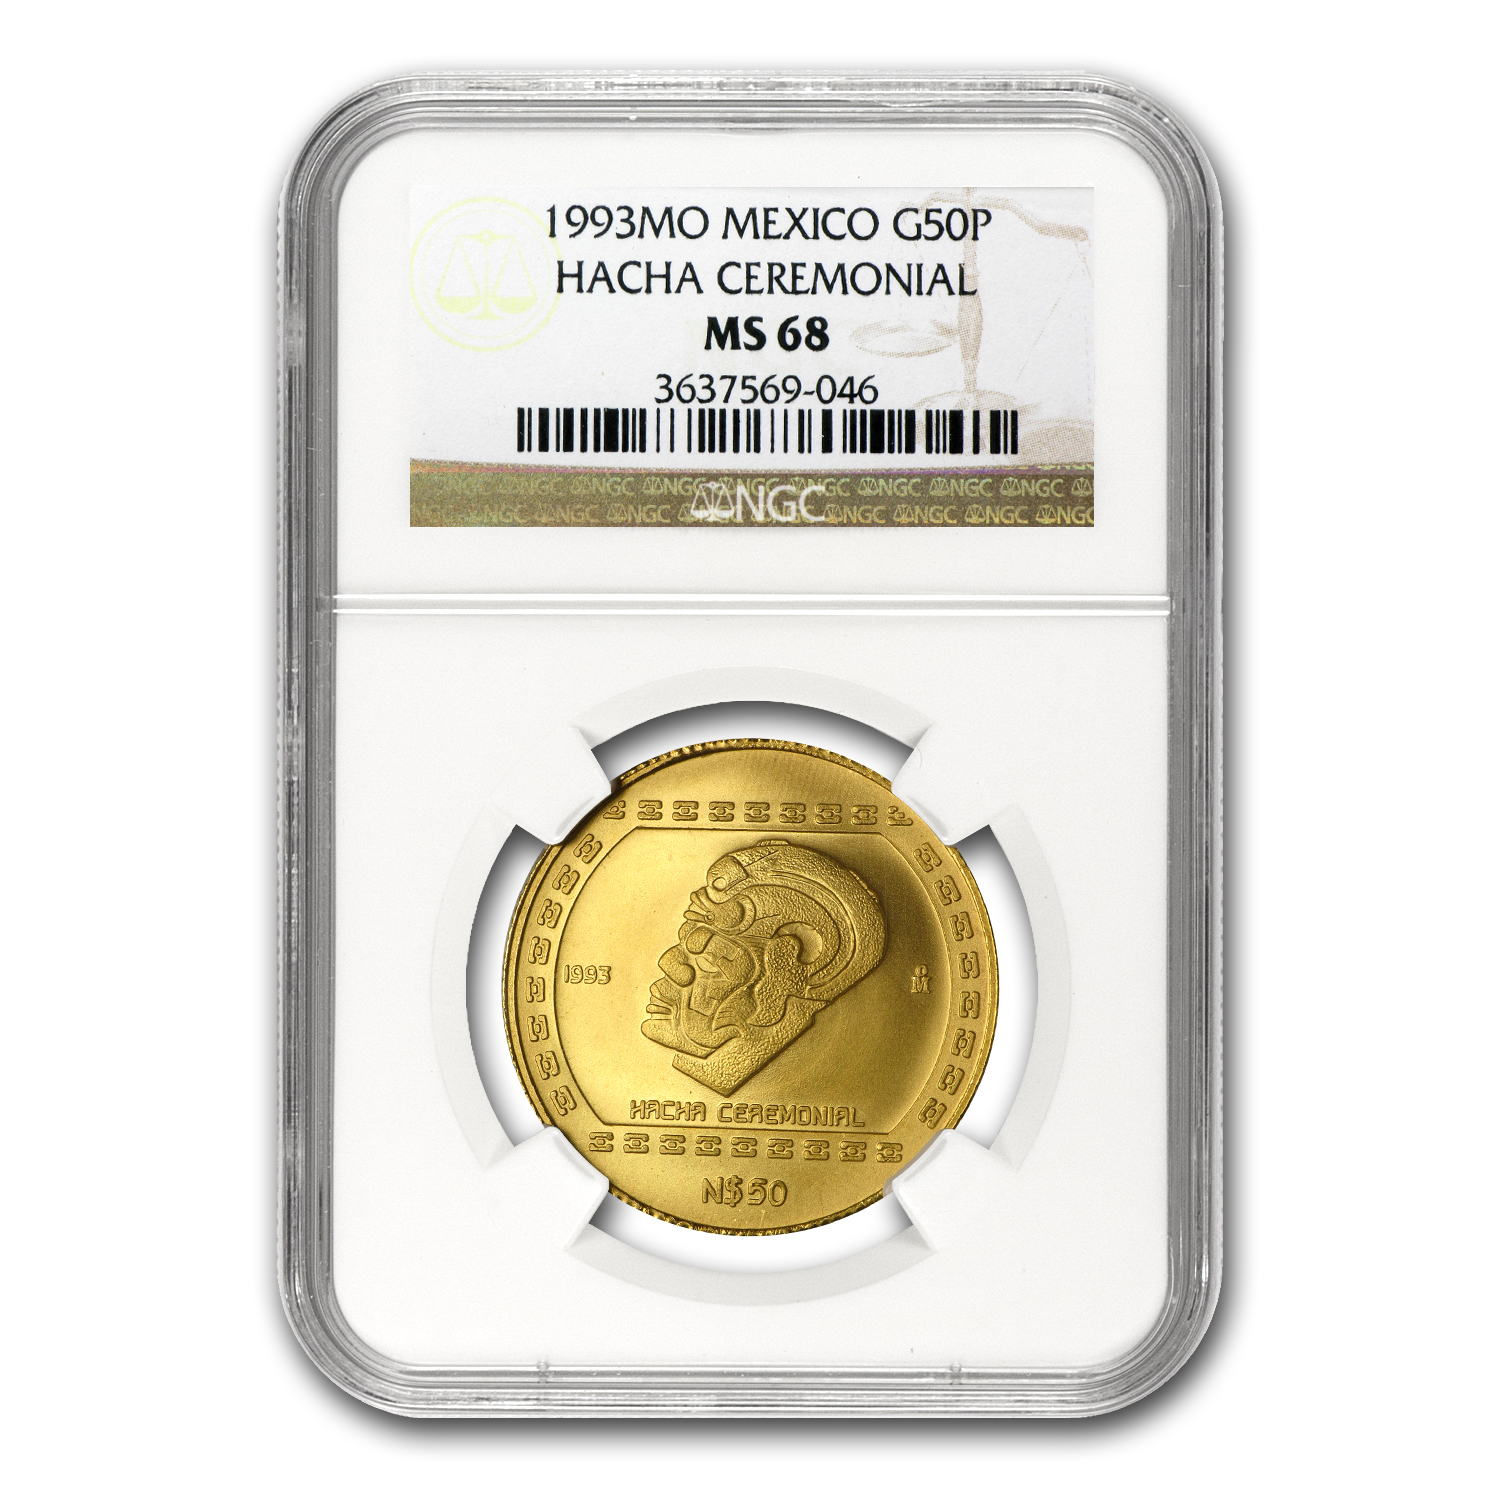 1993 Mexico Gold 50 Pesos Hacha Ceremonial MS-68 NGC